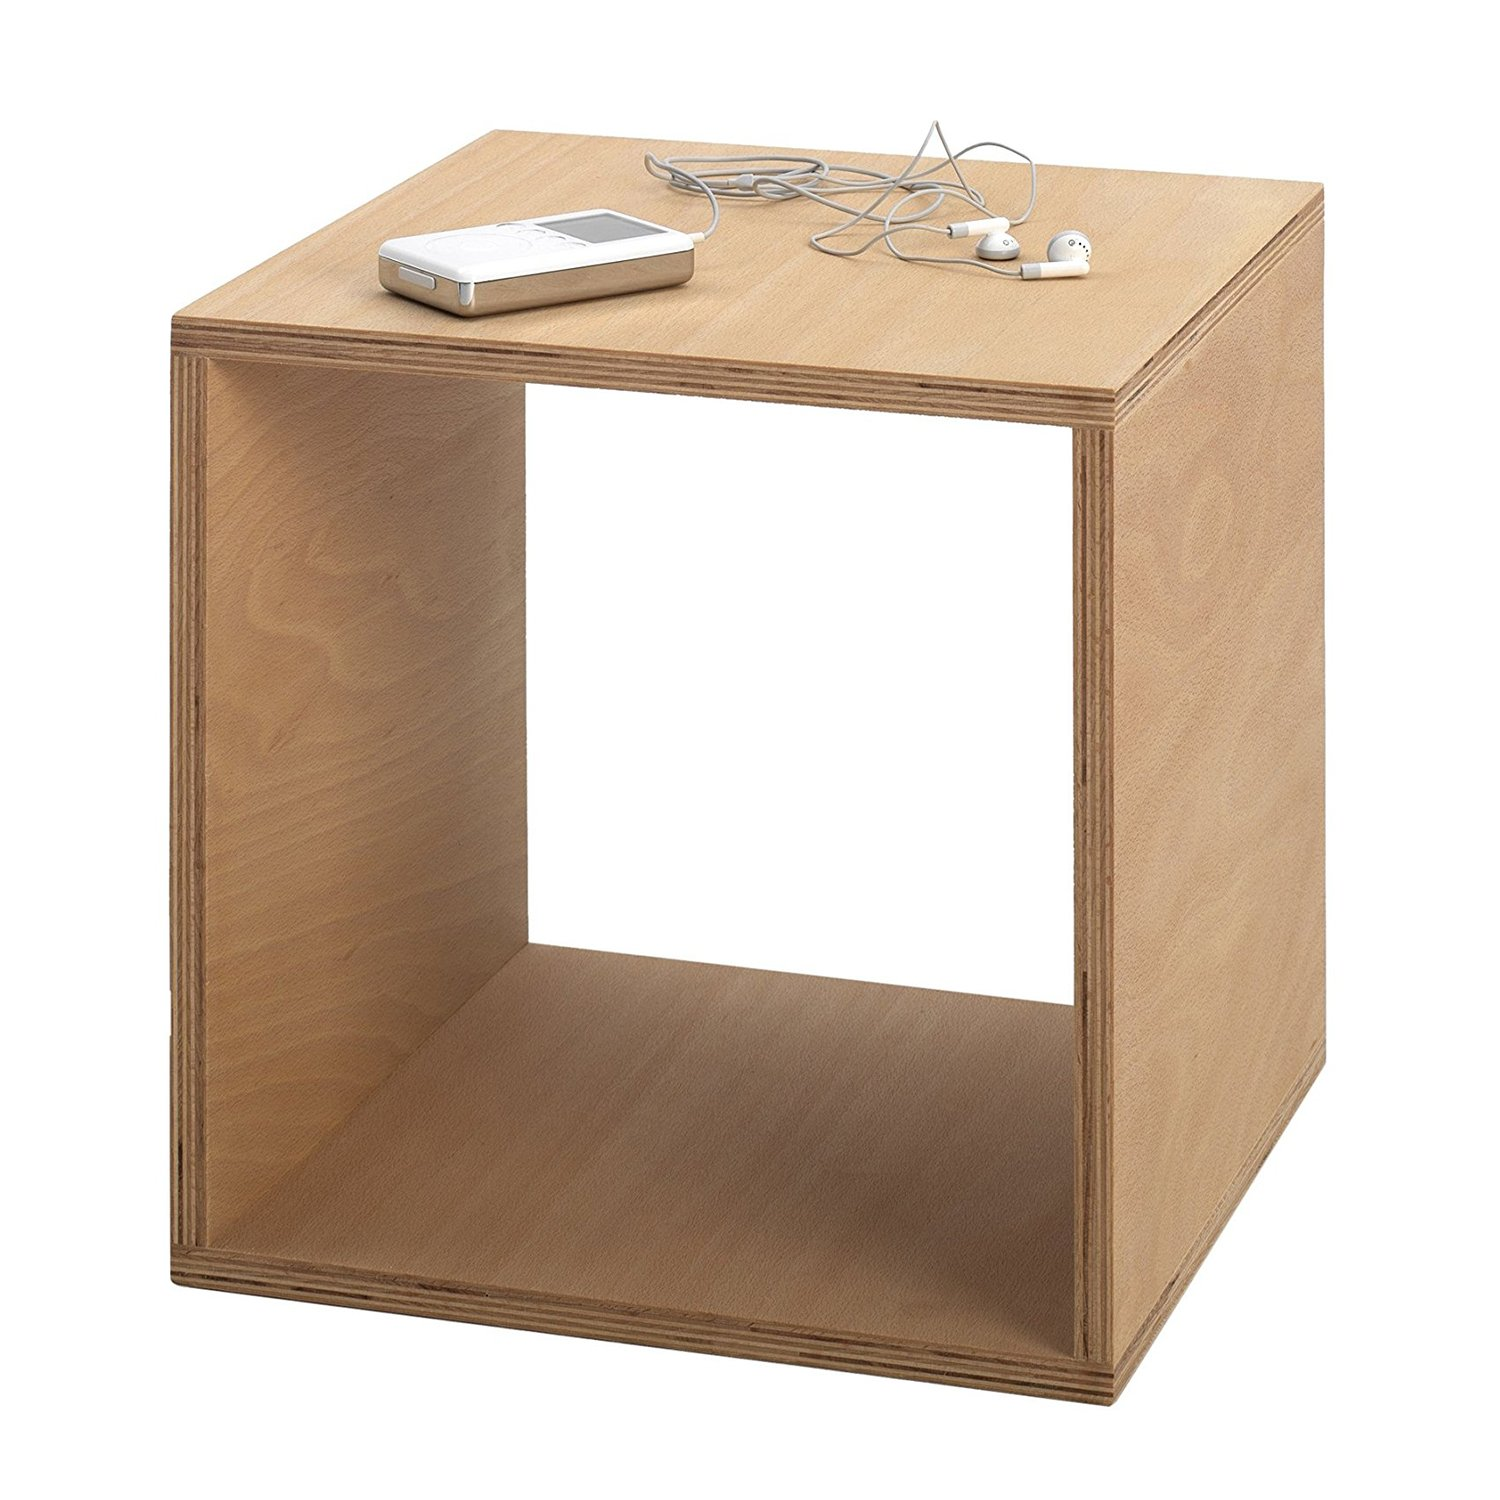 TOJO Cube Bedside Table, 35 by 35 by 35cm